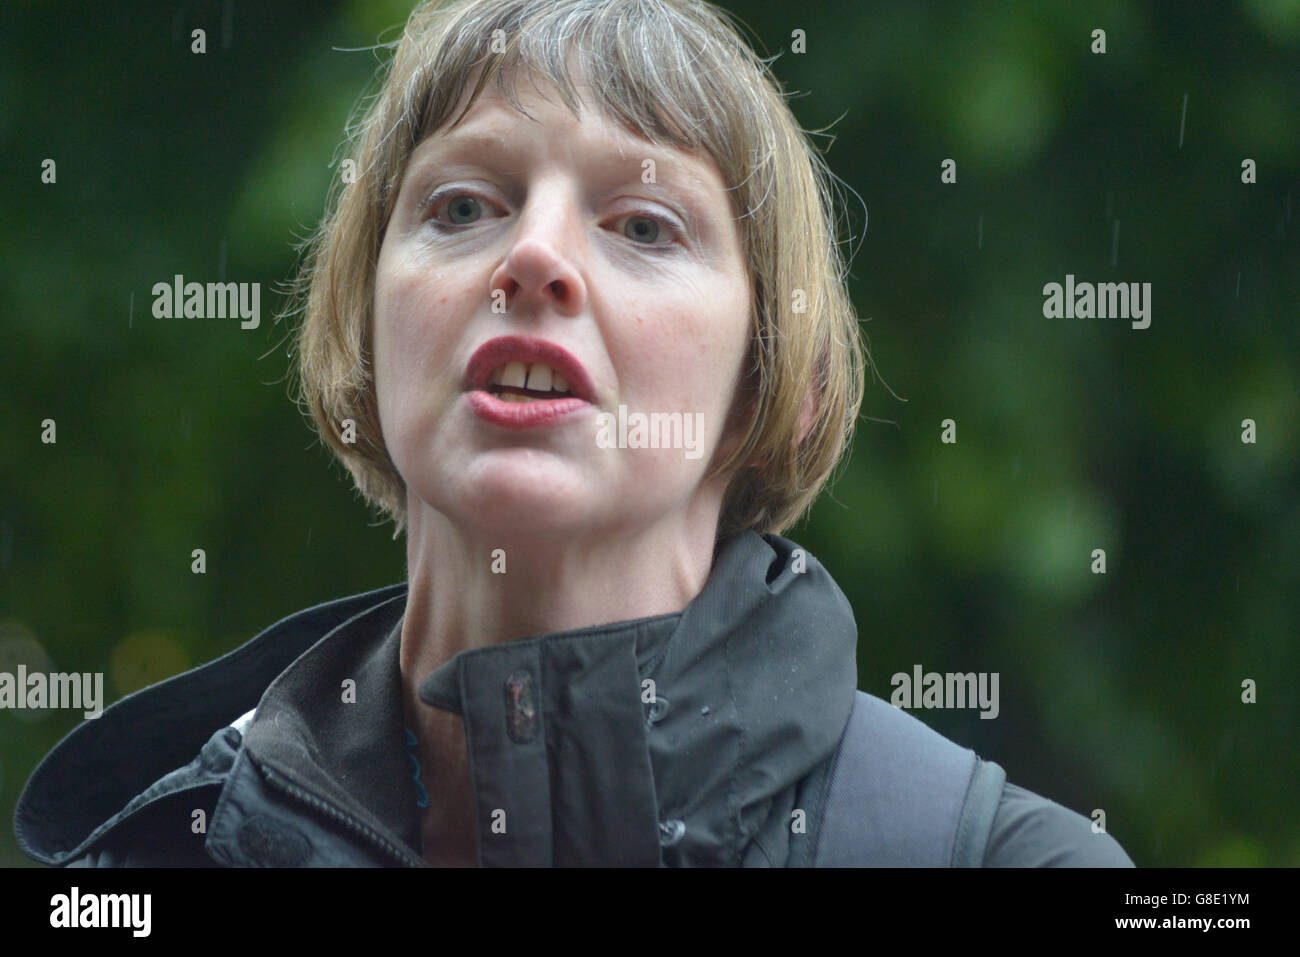 Manchester, UK. 28th June, 2016. A person speaking against the United Kingdom's membership of the European Union, Stock Photo